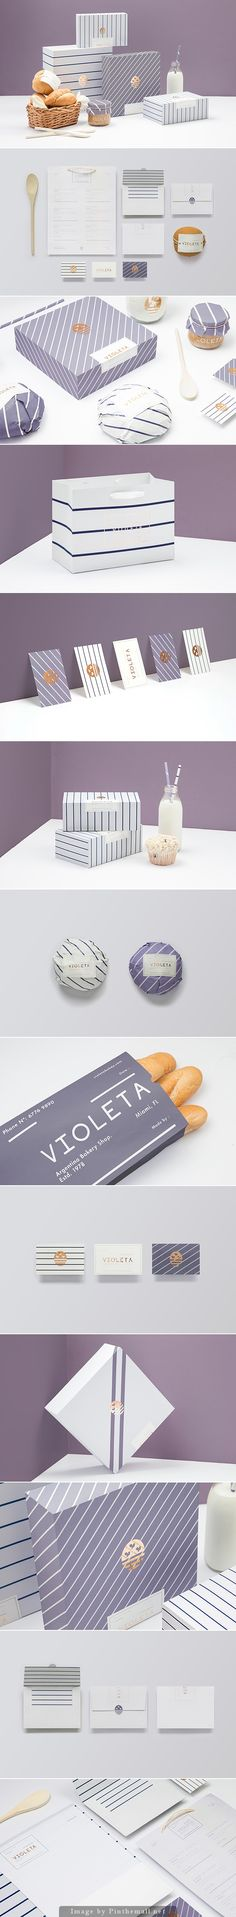 Here's all the gorgeous VIOLETA #packaging and #branding by Anagrama all on one pin PD